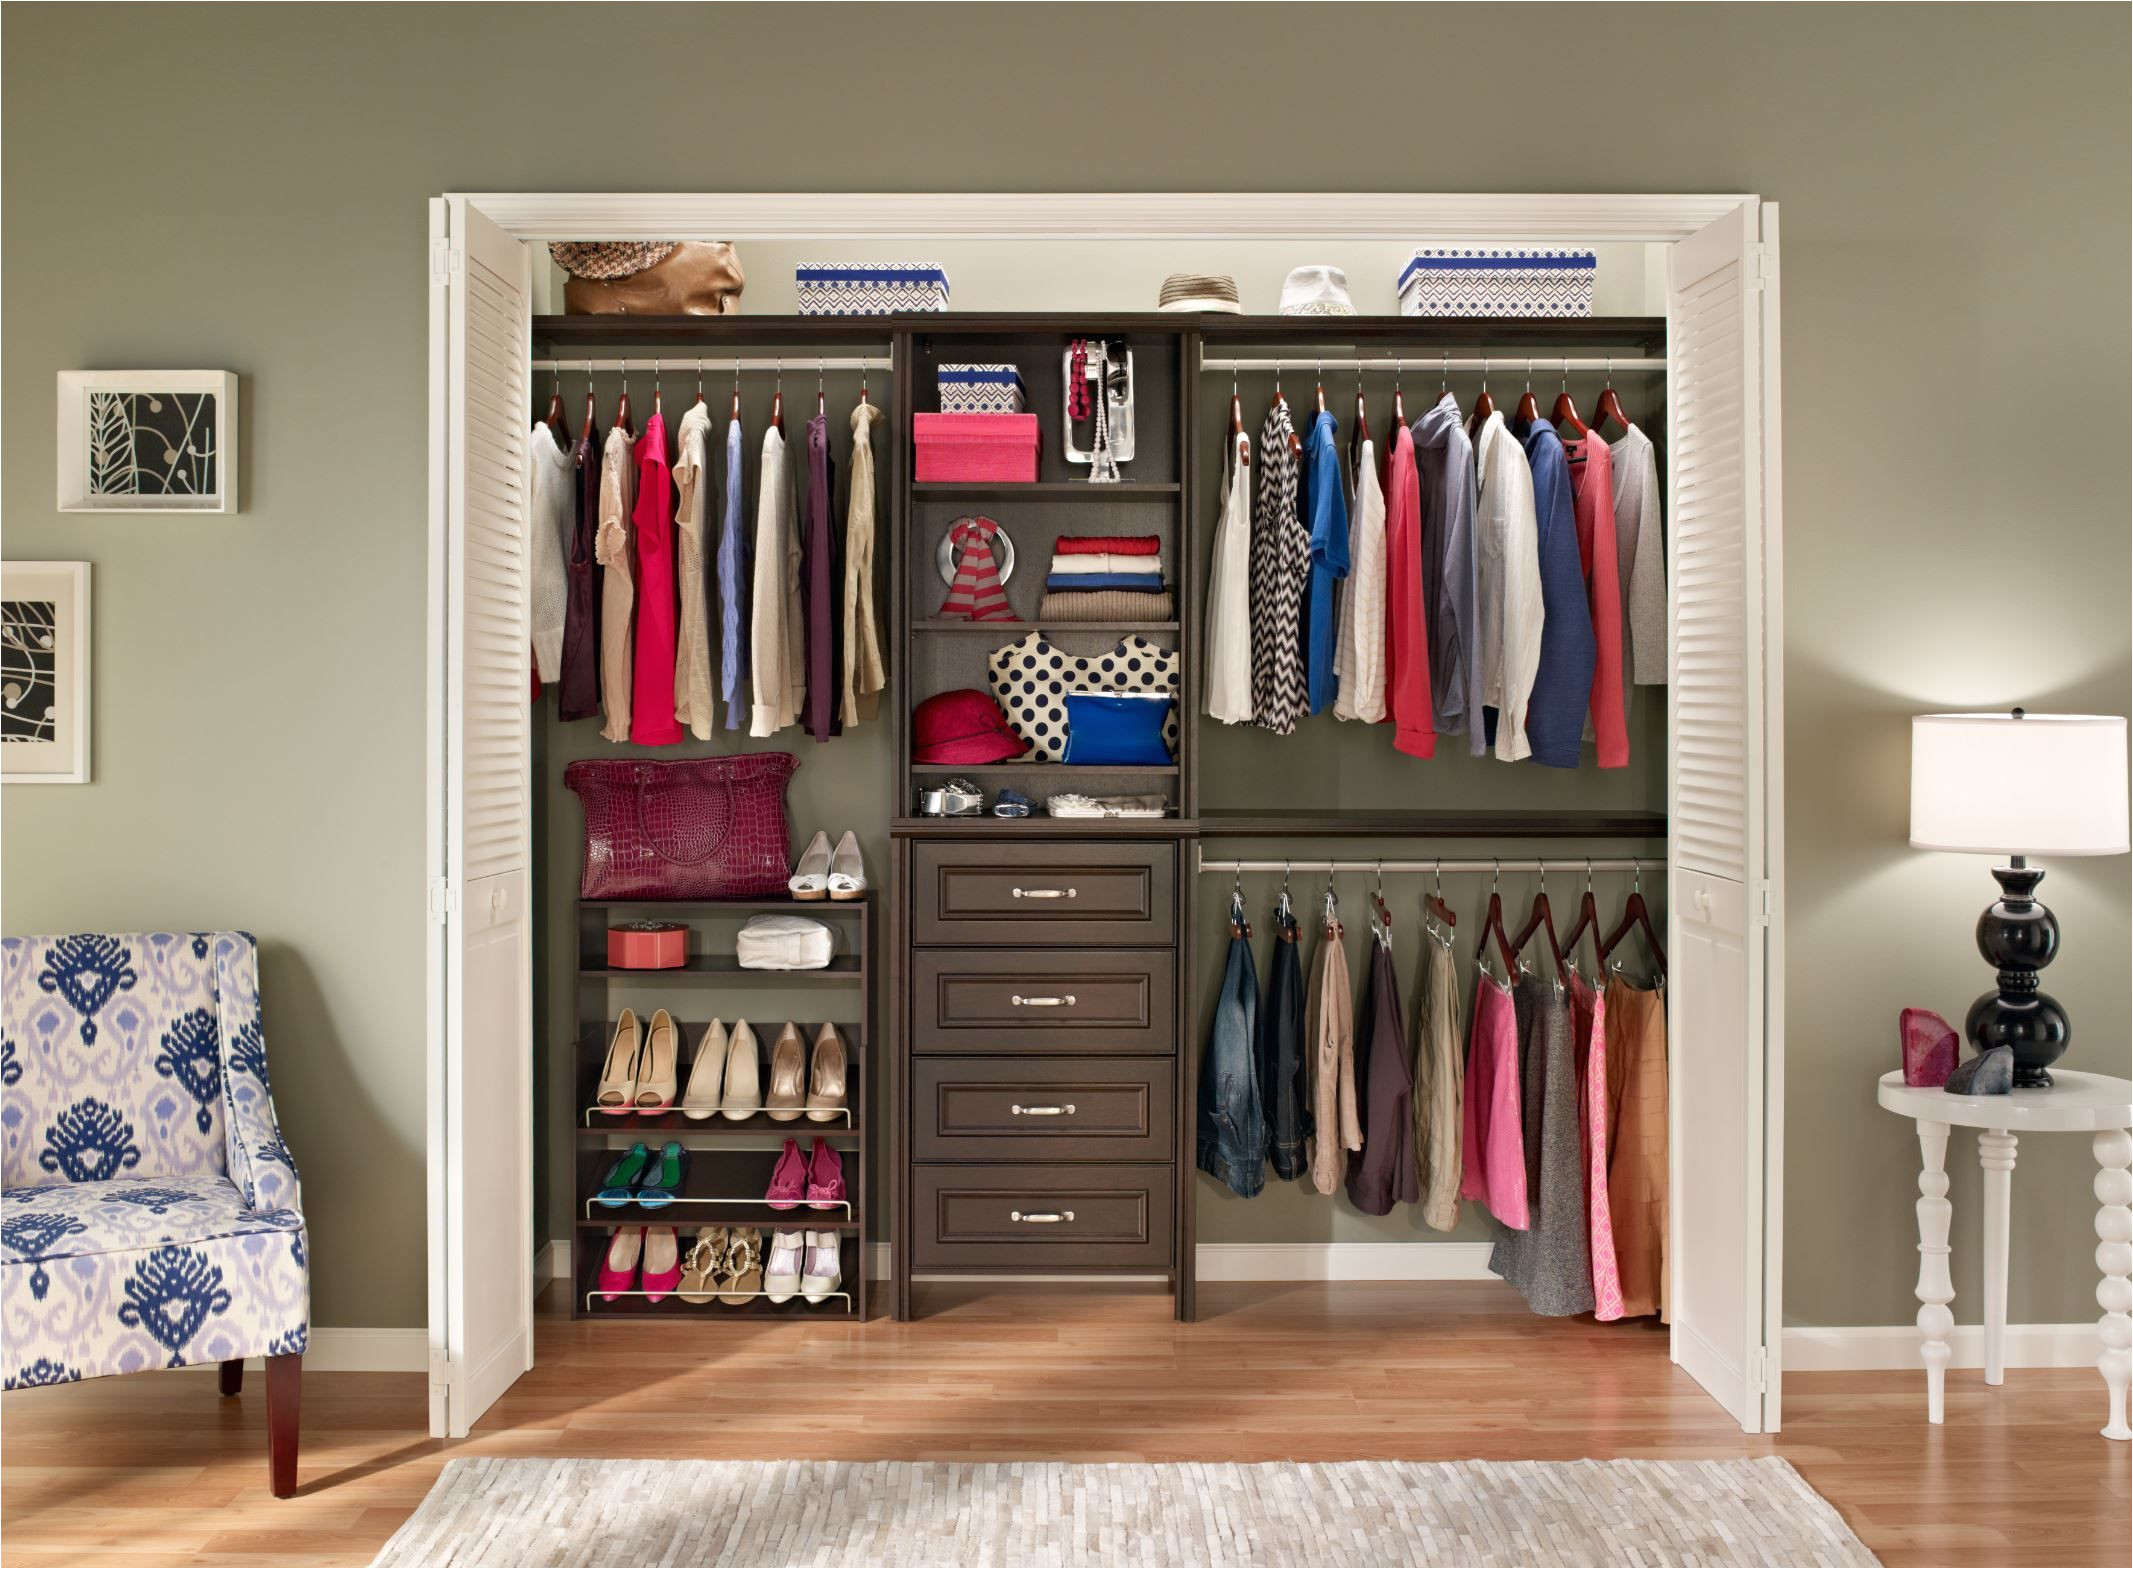 impressed by this closet system check out the beautiful closetmaid chocolate impressions at the homedepot today